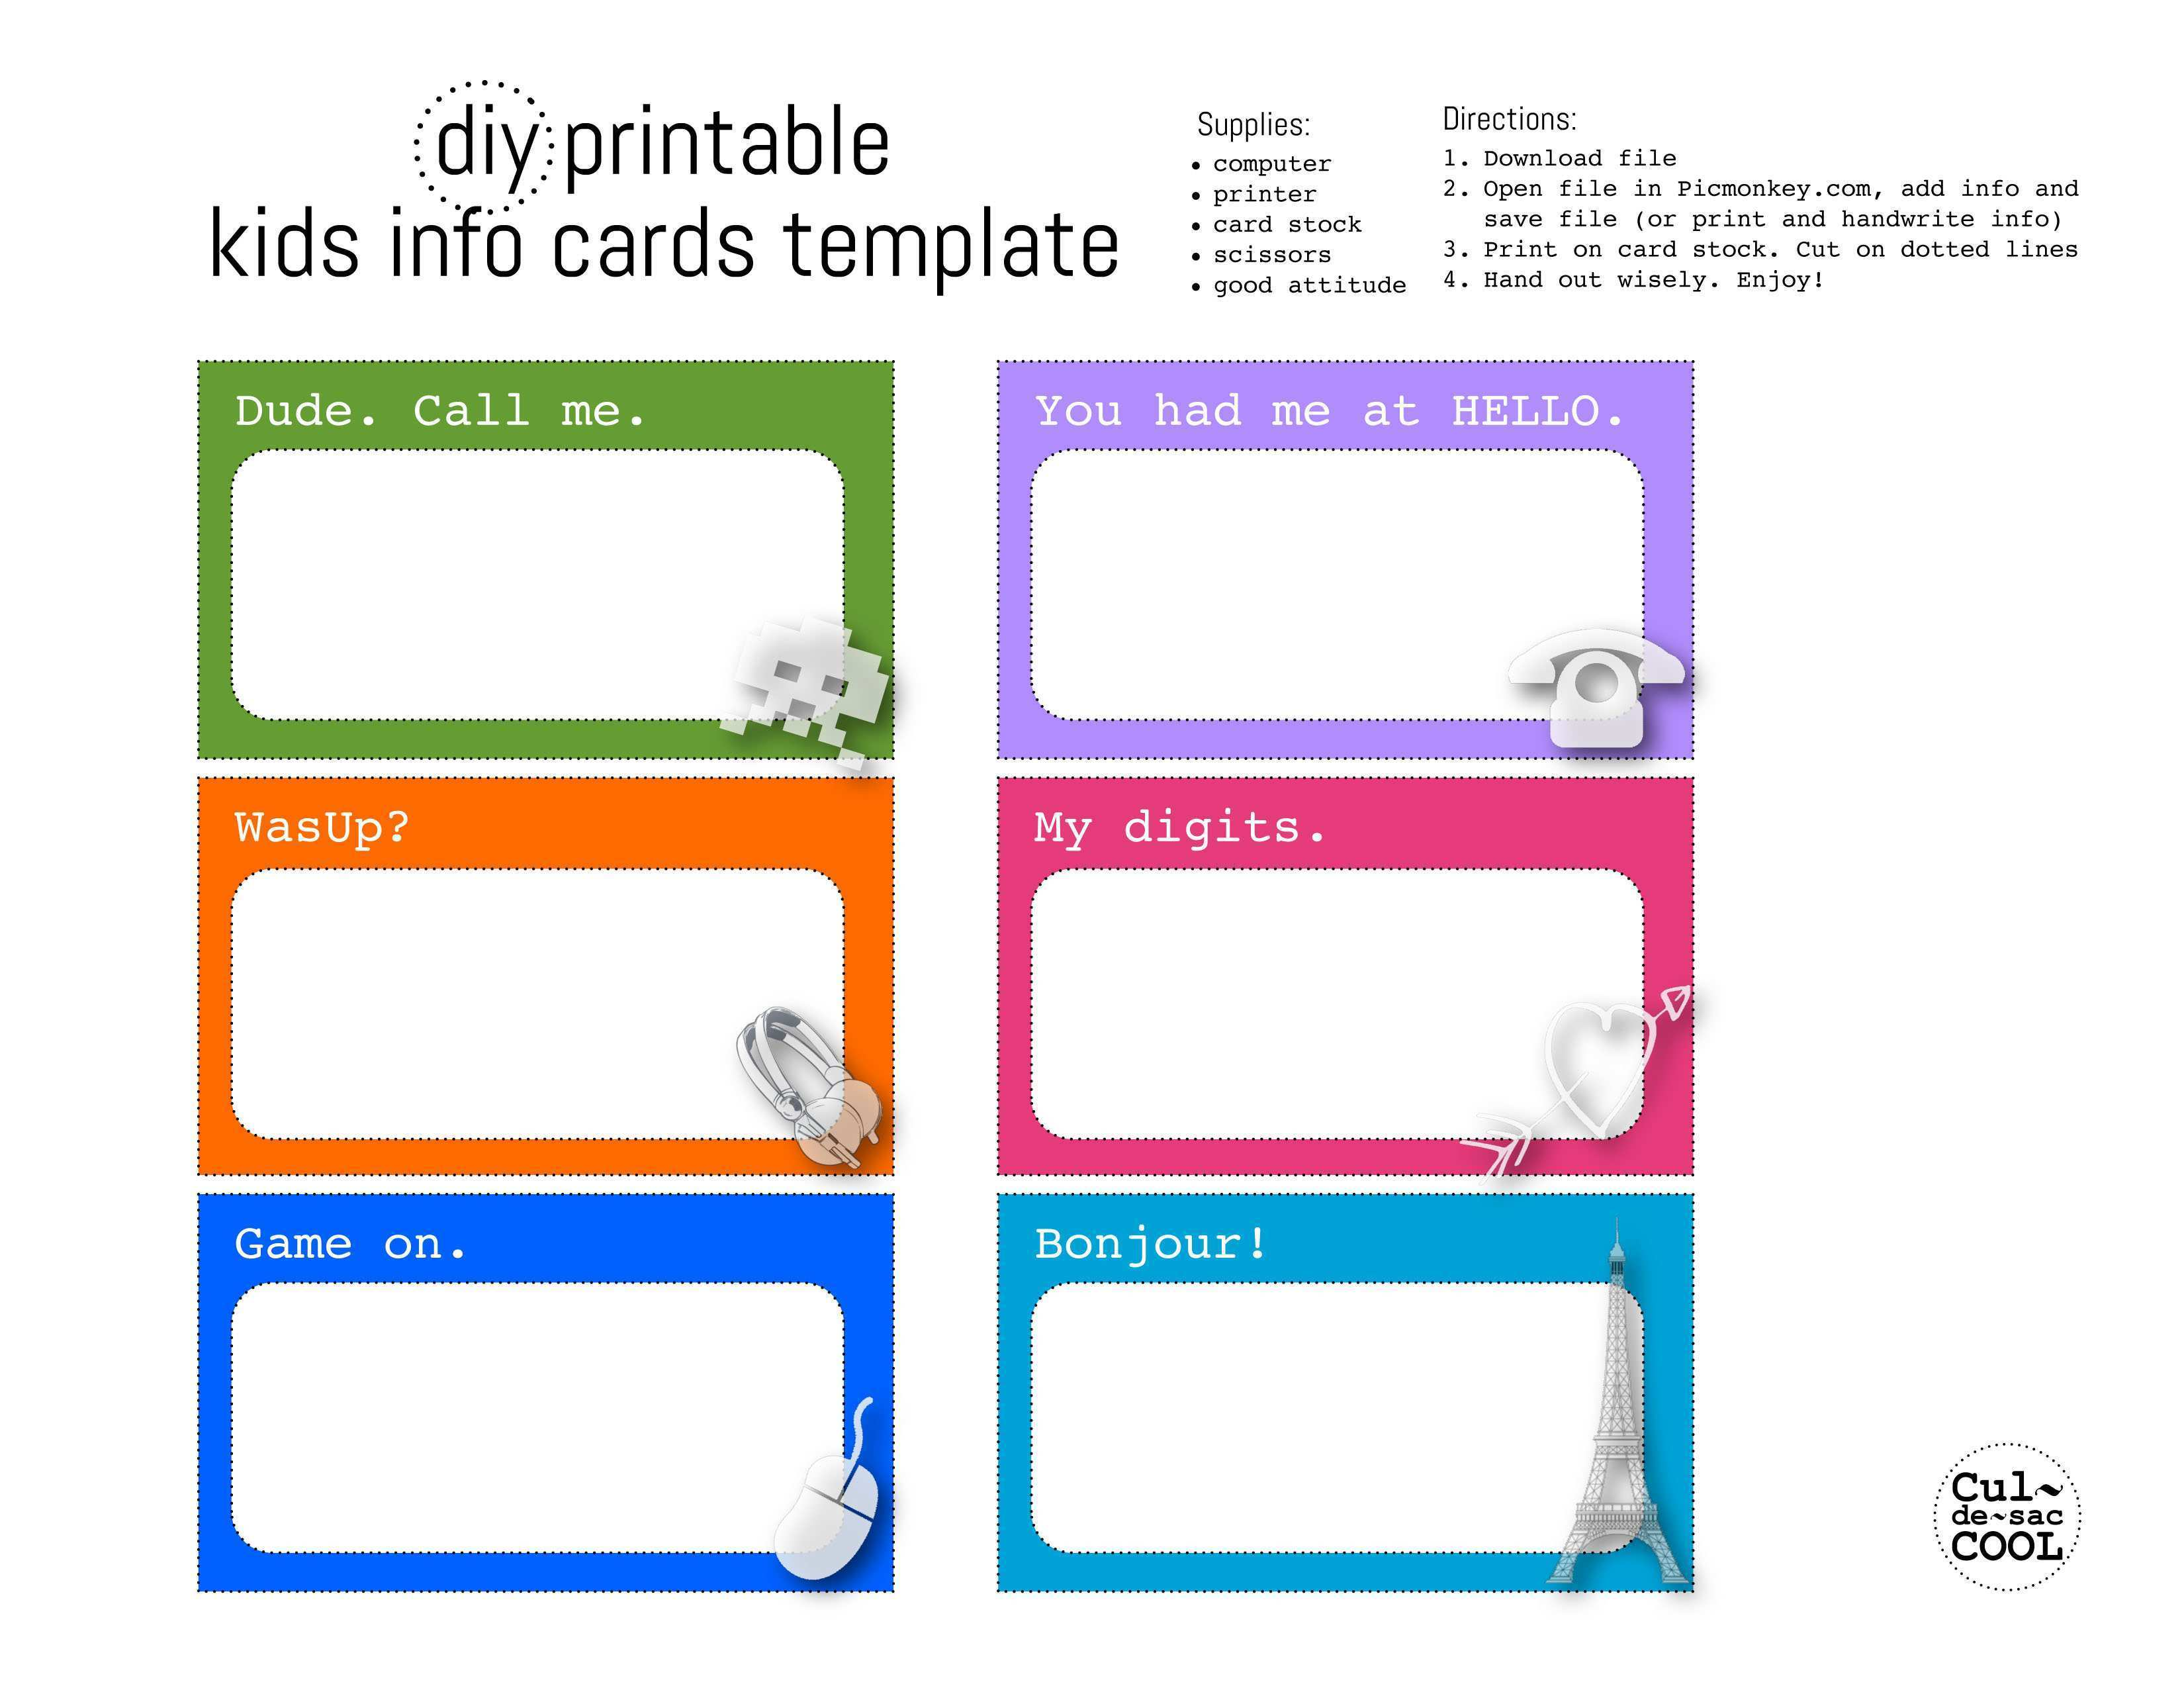 28 Report Calling Card Template Printable for Calling Card Template Printable